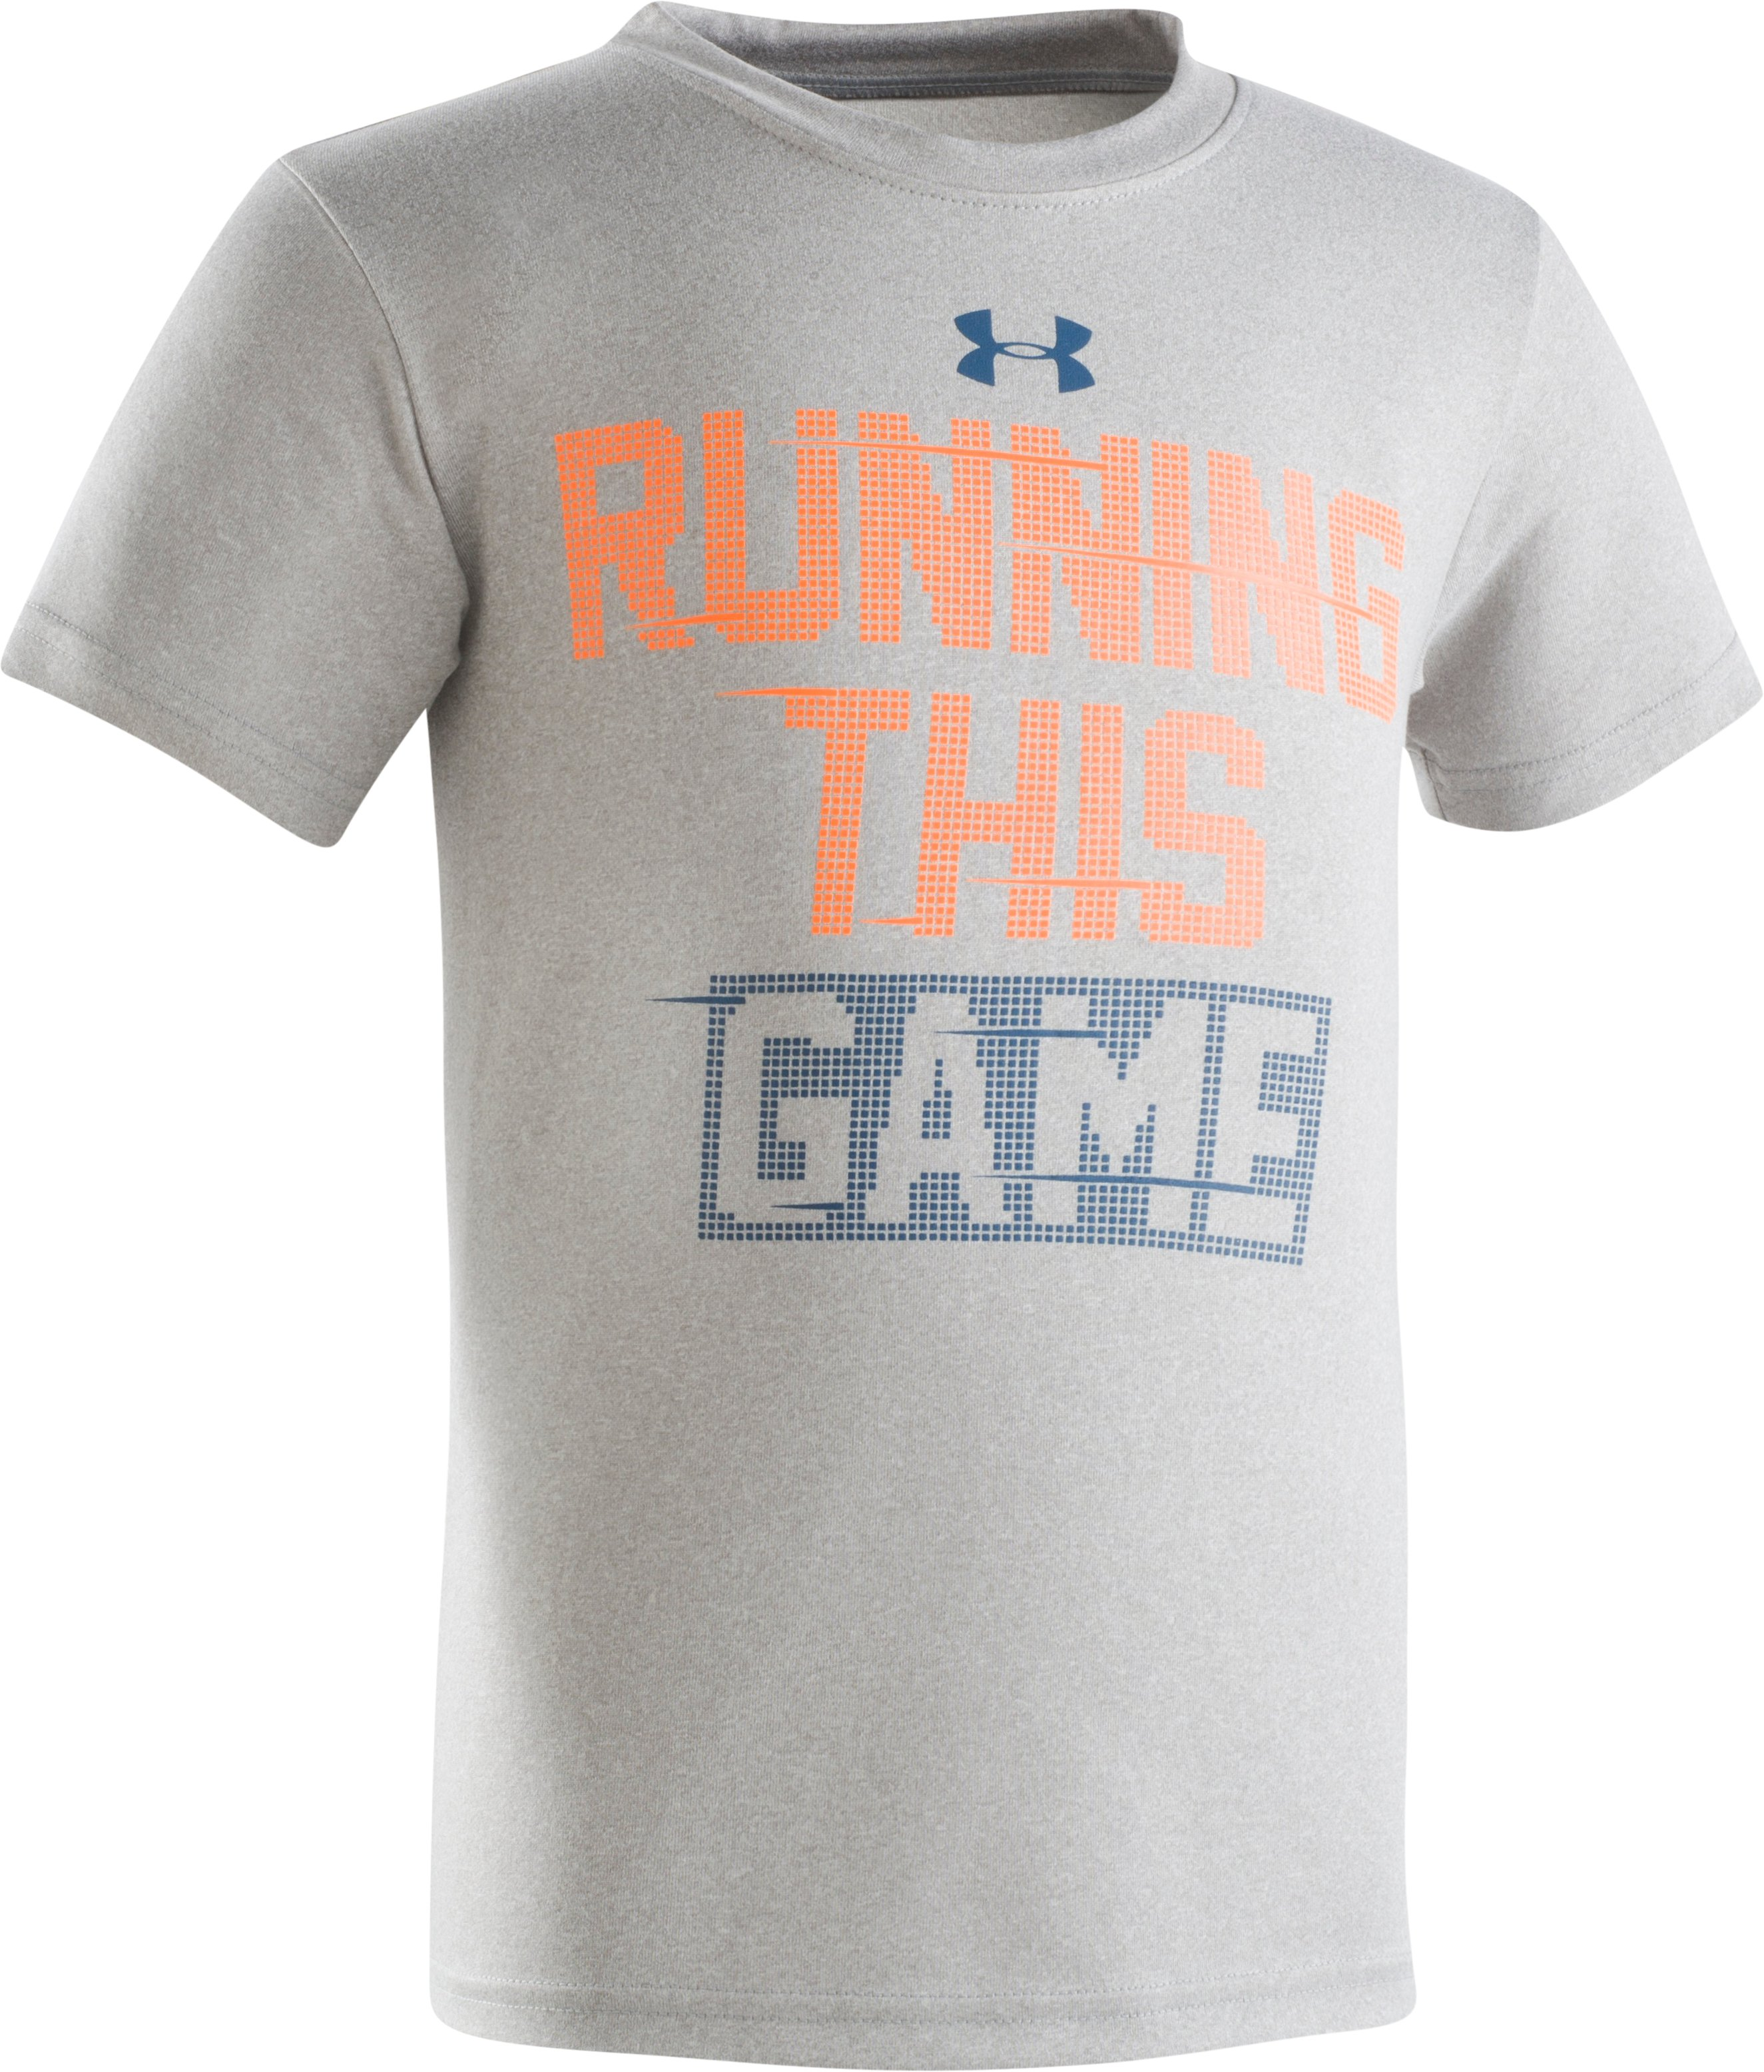 Boys' Toddler UA Running This Game Short Sleeve Shirt, True Gray Heather